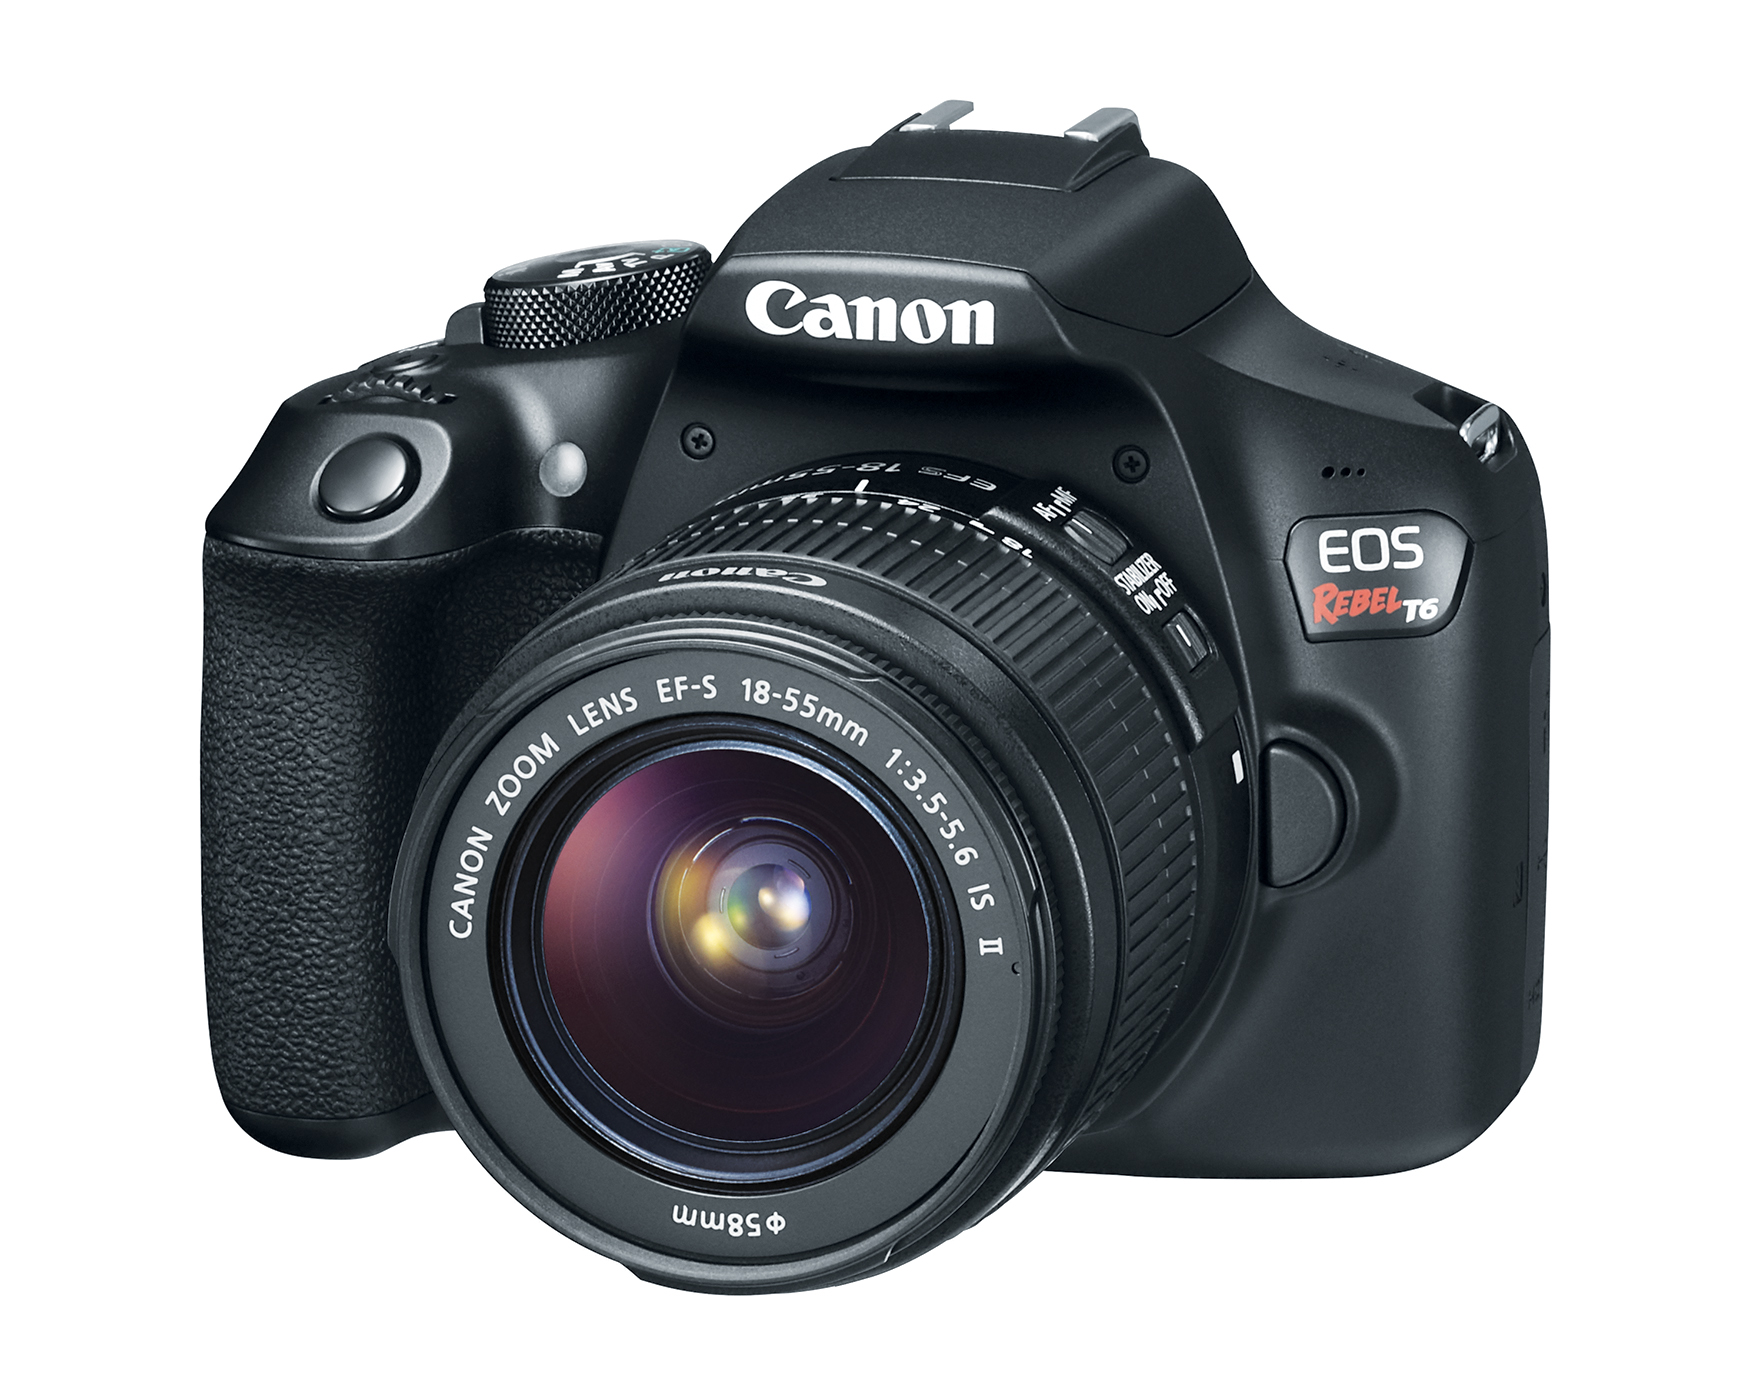 EOS Rebel T6 Digital Camera from Canon